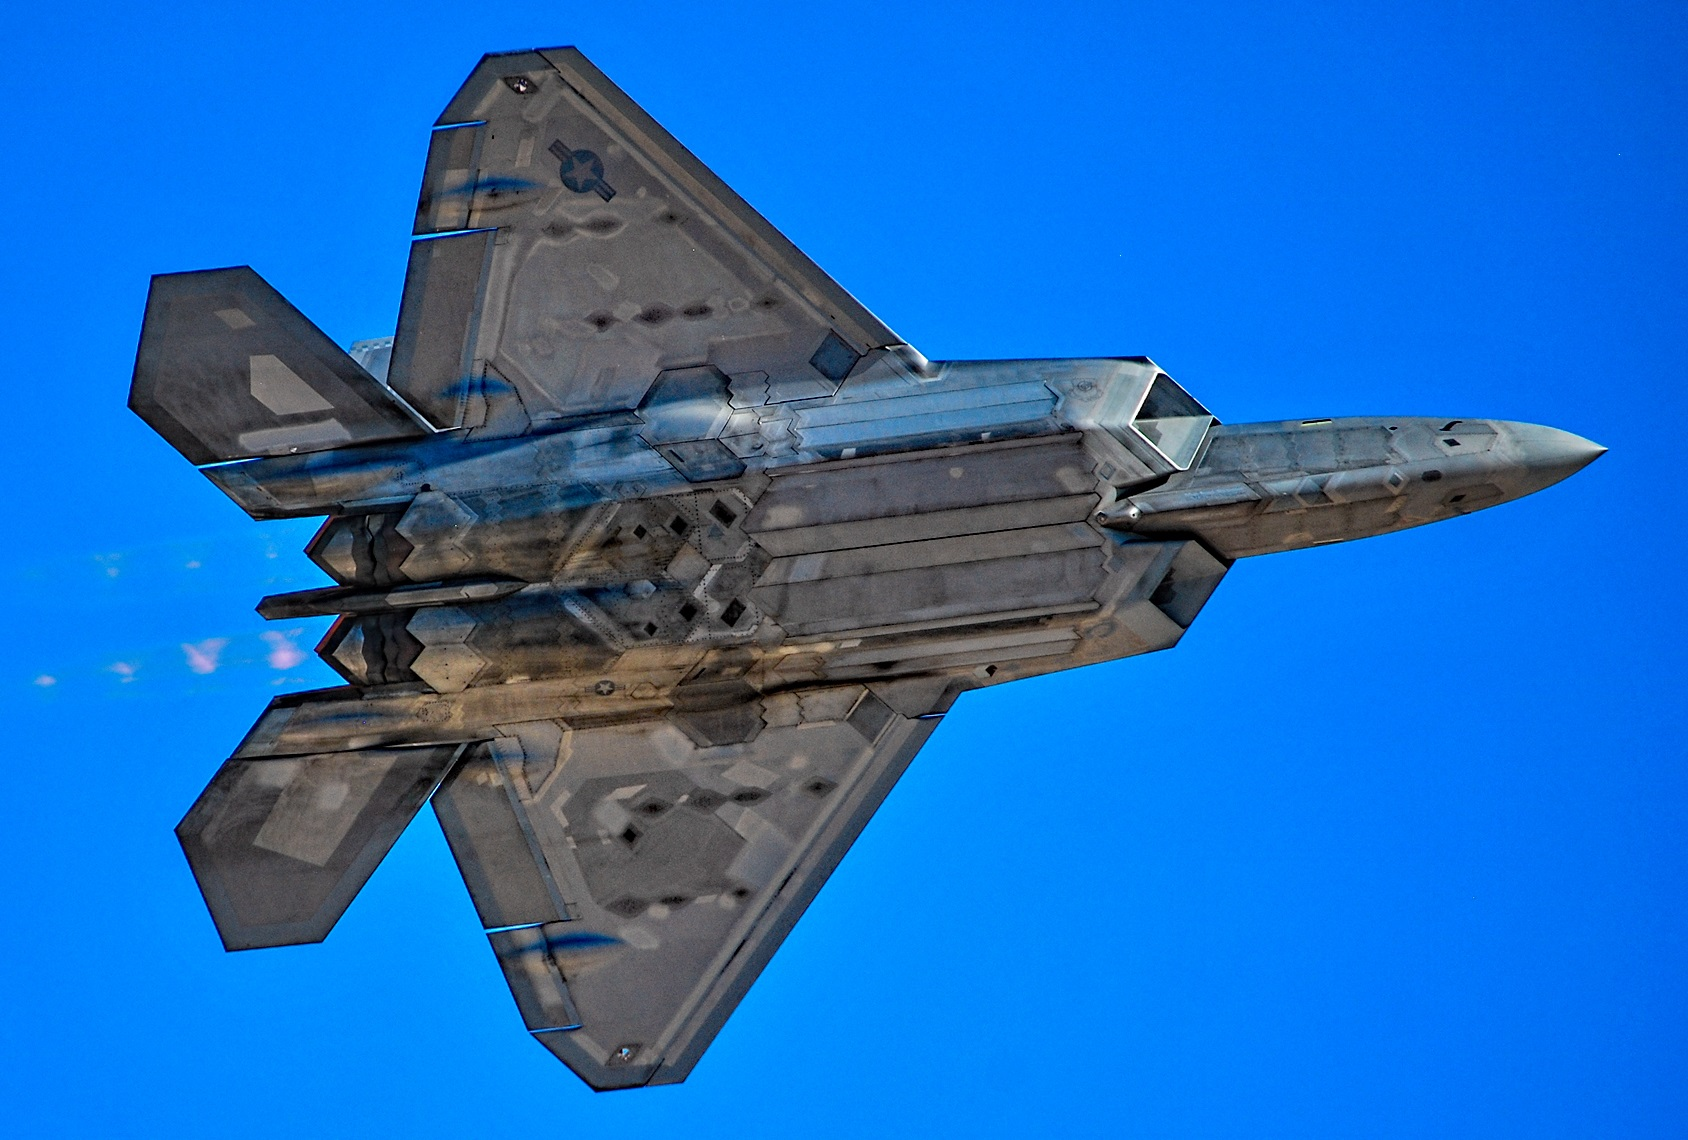 F-35s and F-22s Could Soon Fire Laser Weapons (Think Laser Dogfights)